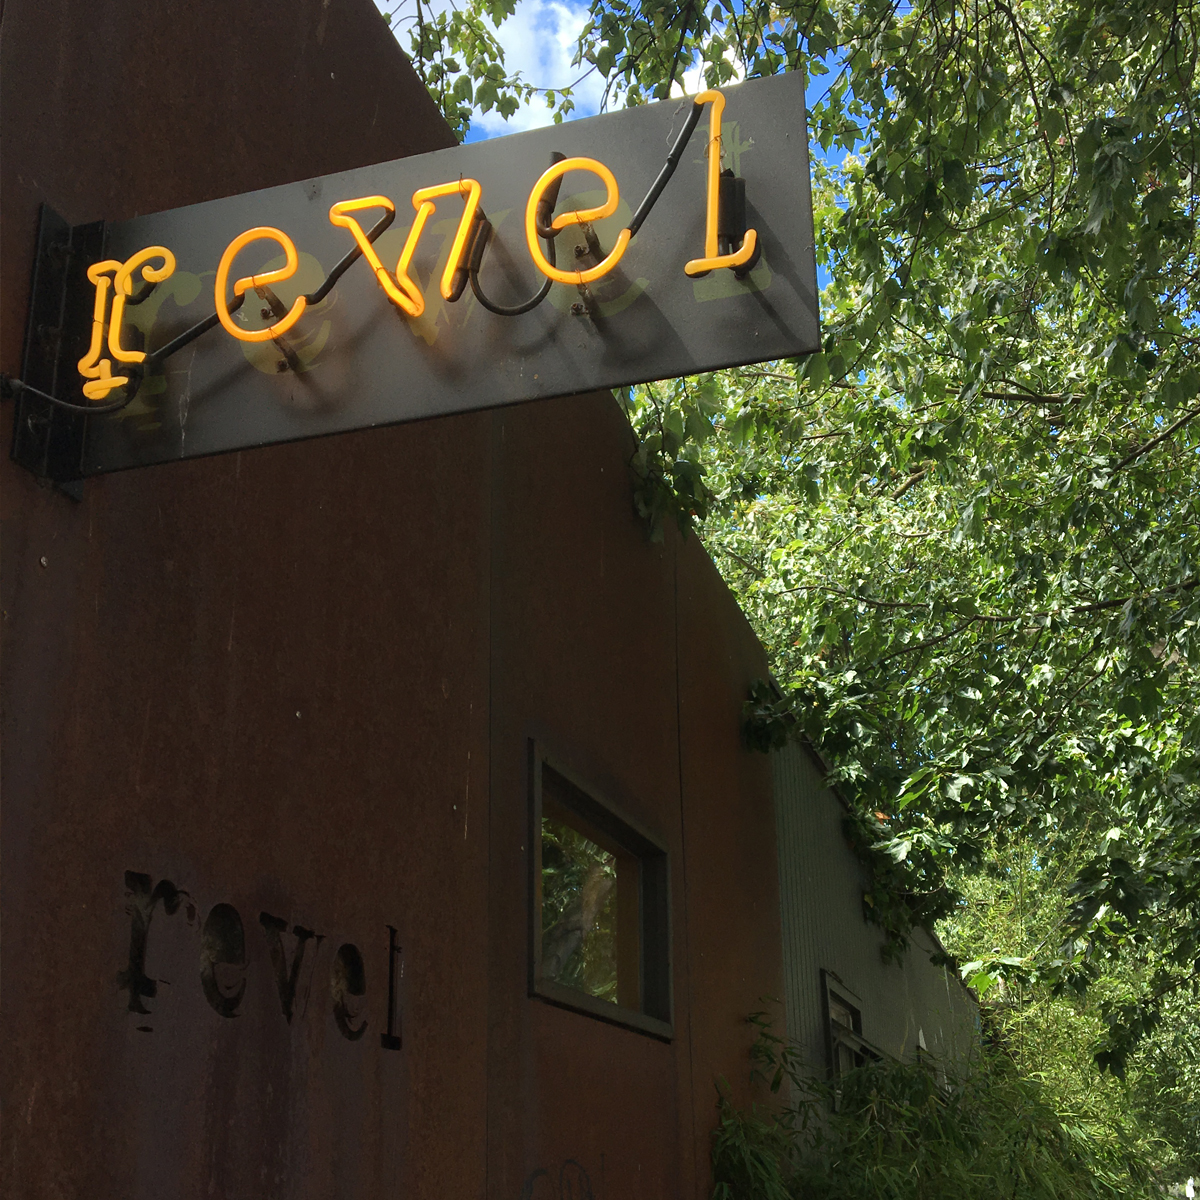 Revel's low, rusty home in Fremont.